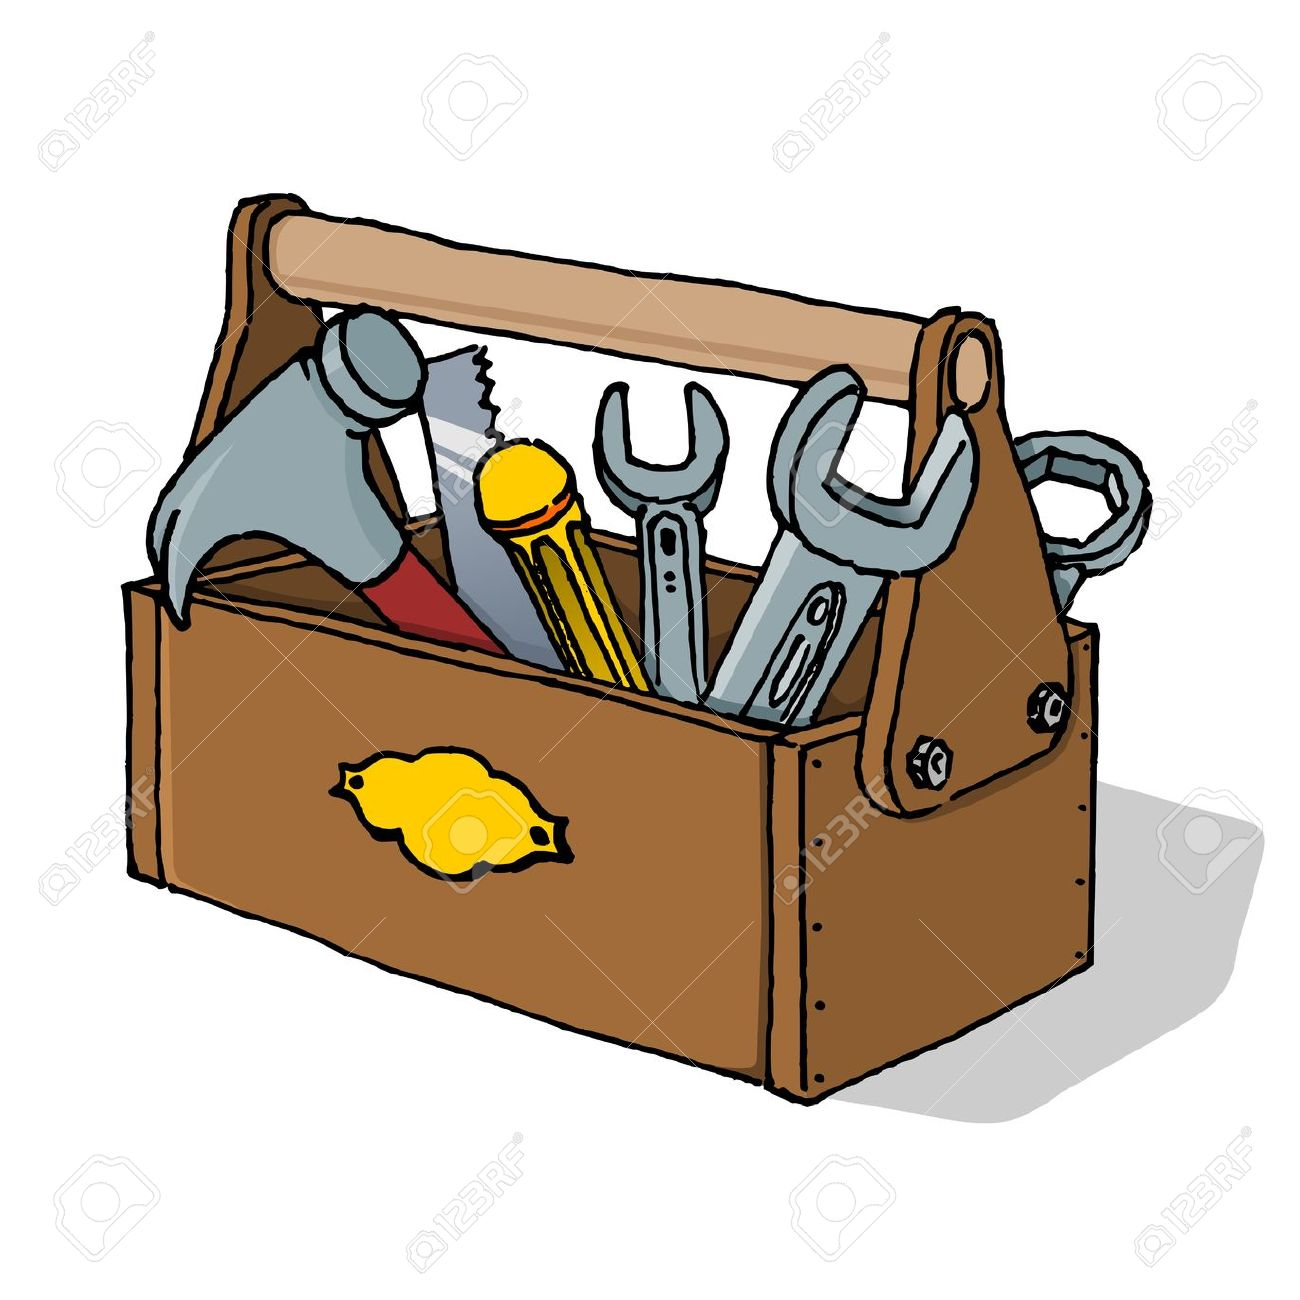 309 Toolbox free clipart.